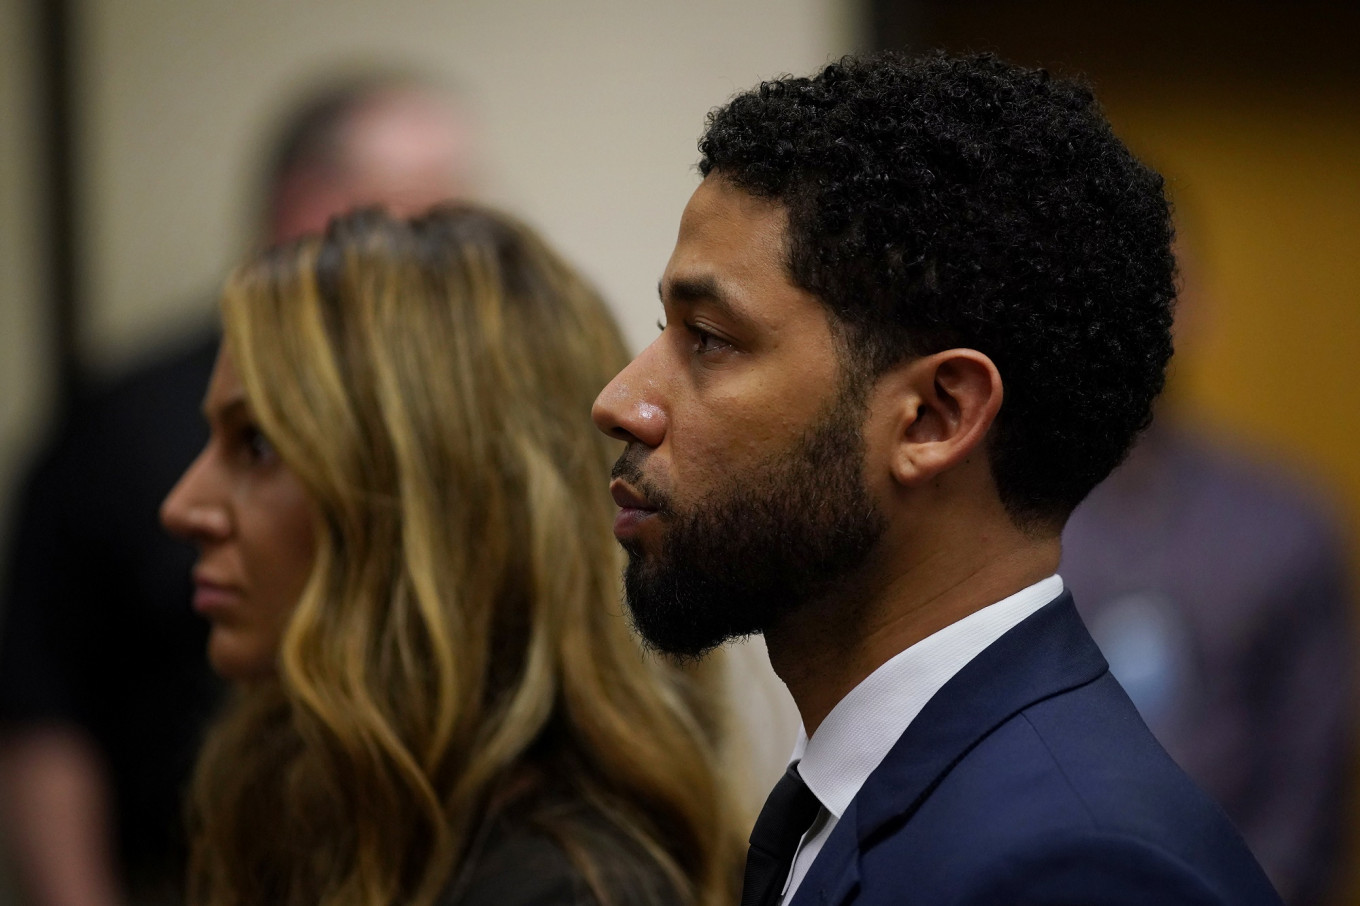 'Empire' actor Smollett pleads not guilty to lying about Chicago attack